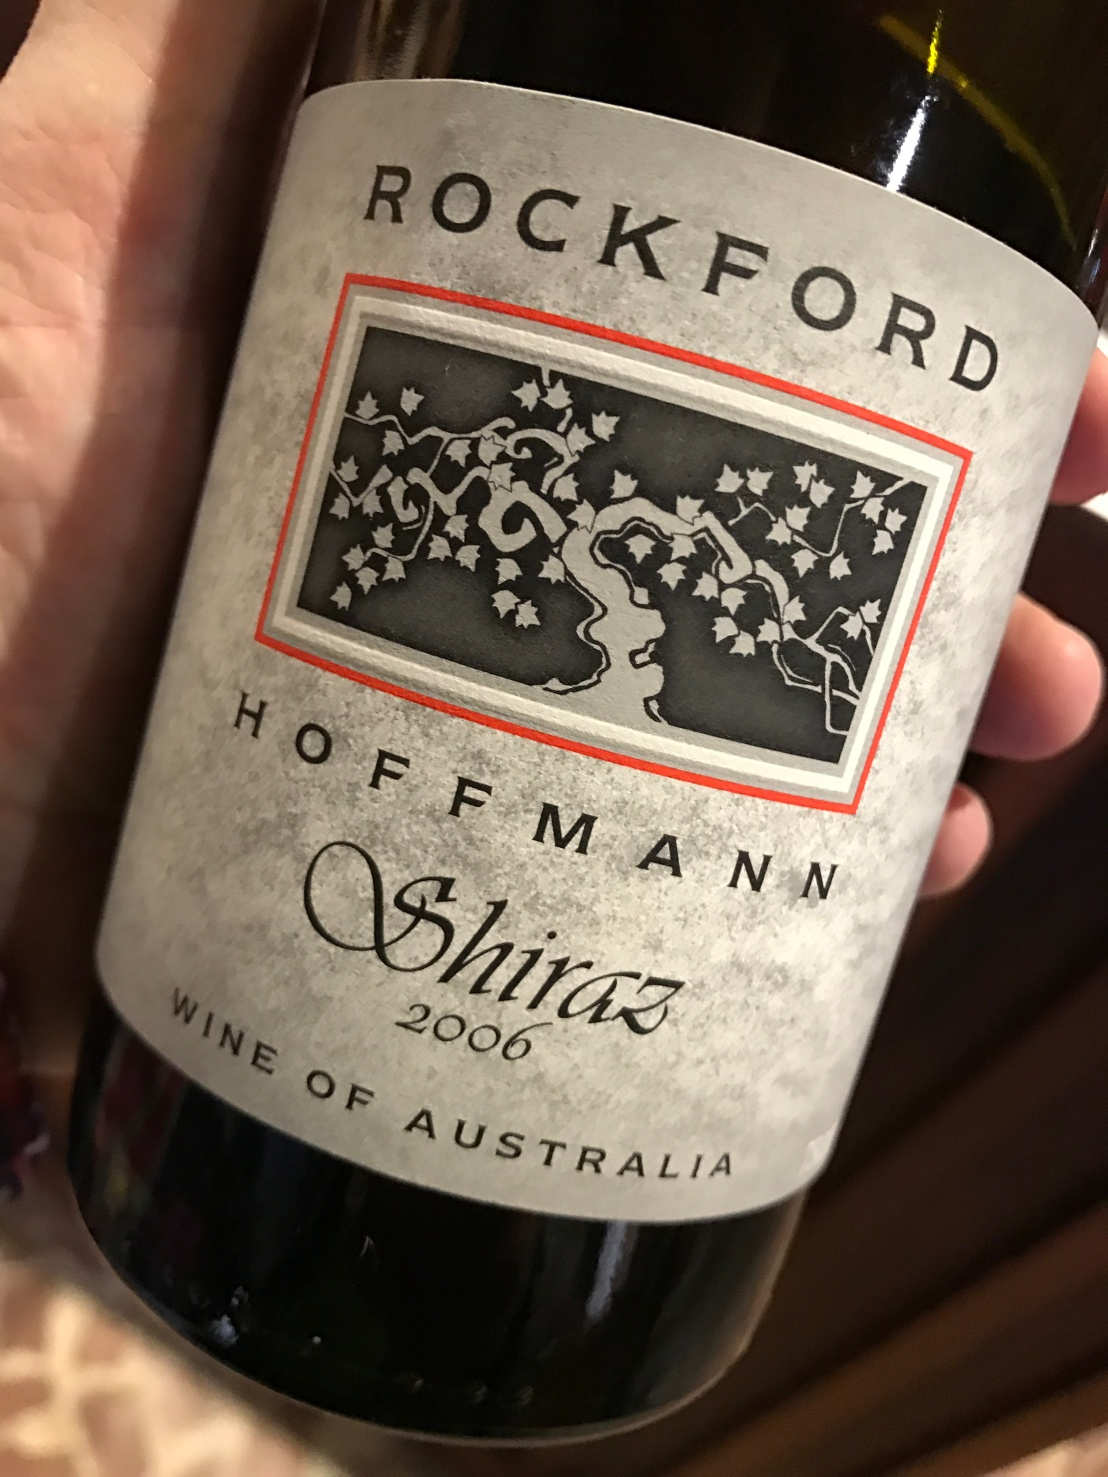 Wine Review: 2006 Rockford SVS Hoffmann Shiraz and 2006 Rockford SVS Flaxman Valley Shiraz